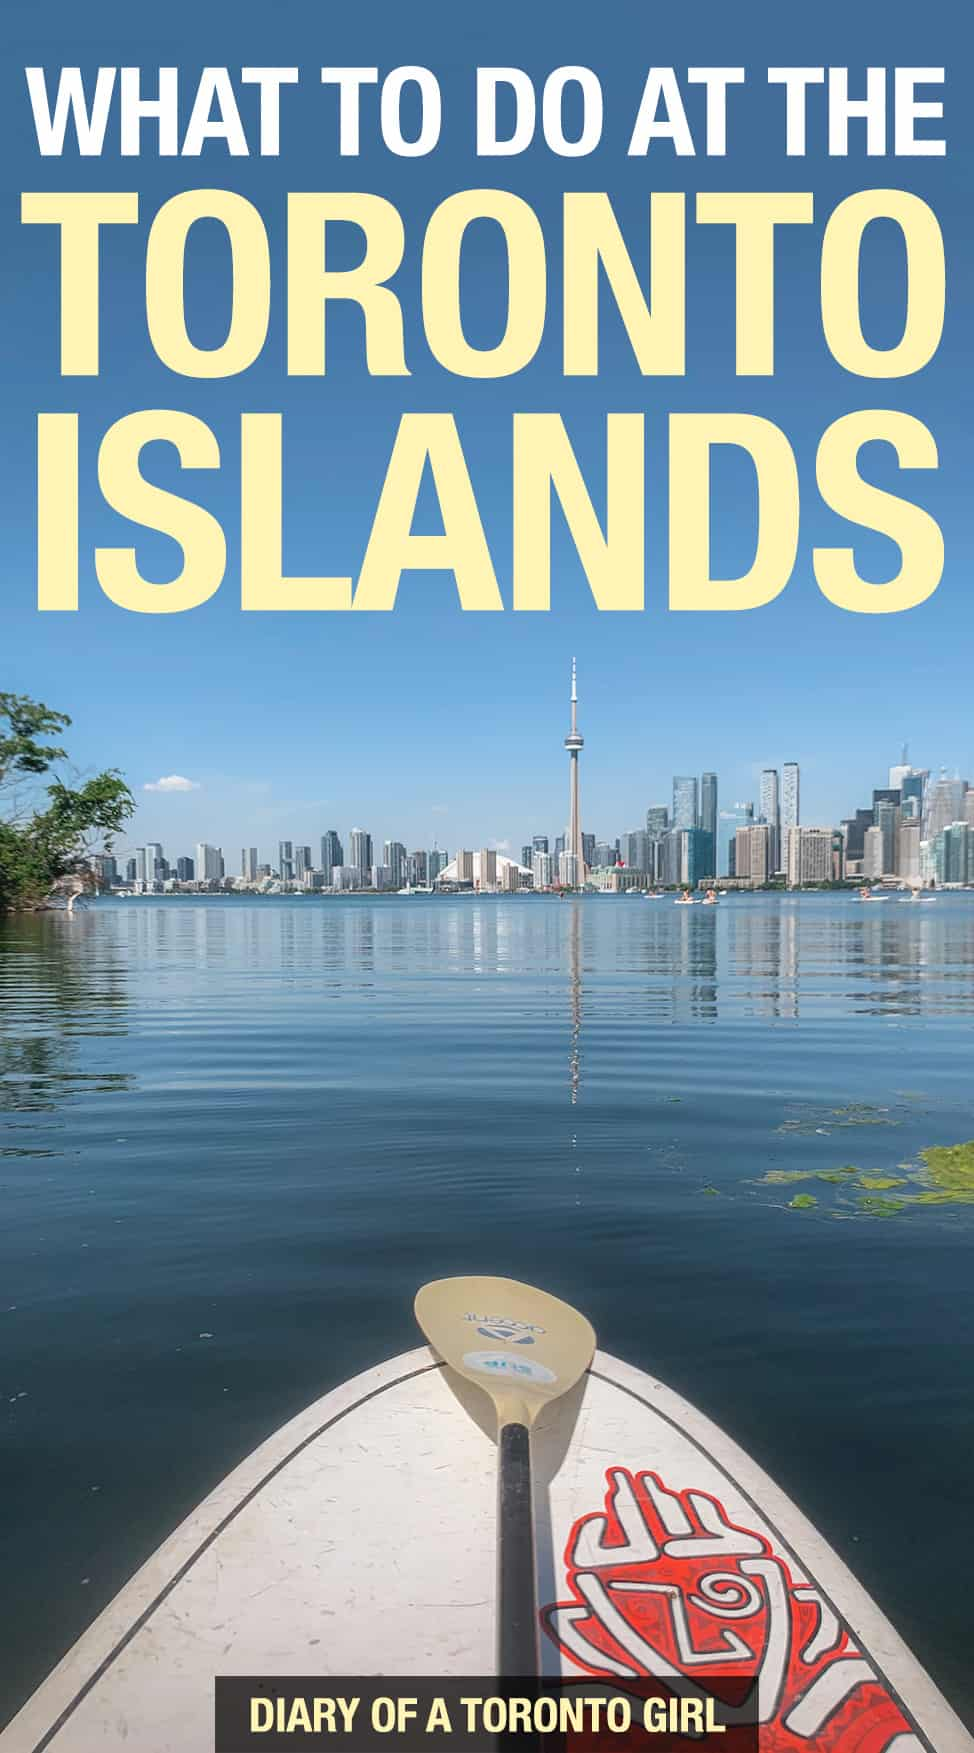 The Toronto Islands is a fun mini getaway you can do right in the heart of downtown Toronto. Just take the short 15 minute ferry over to the islands and enjoy a day trip full of activities! Here's how to spend the perfect day exploring the Toronto Islands.